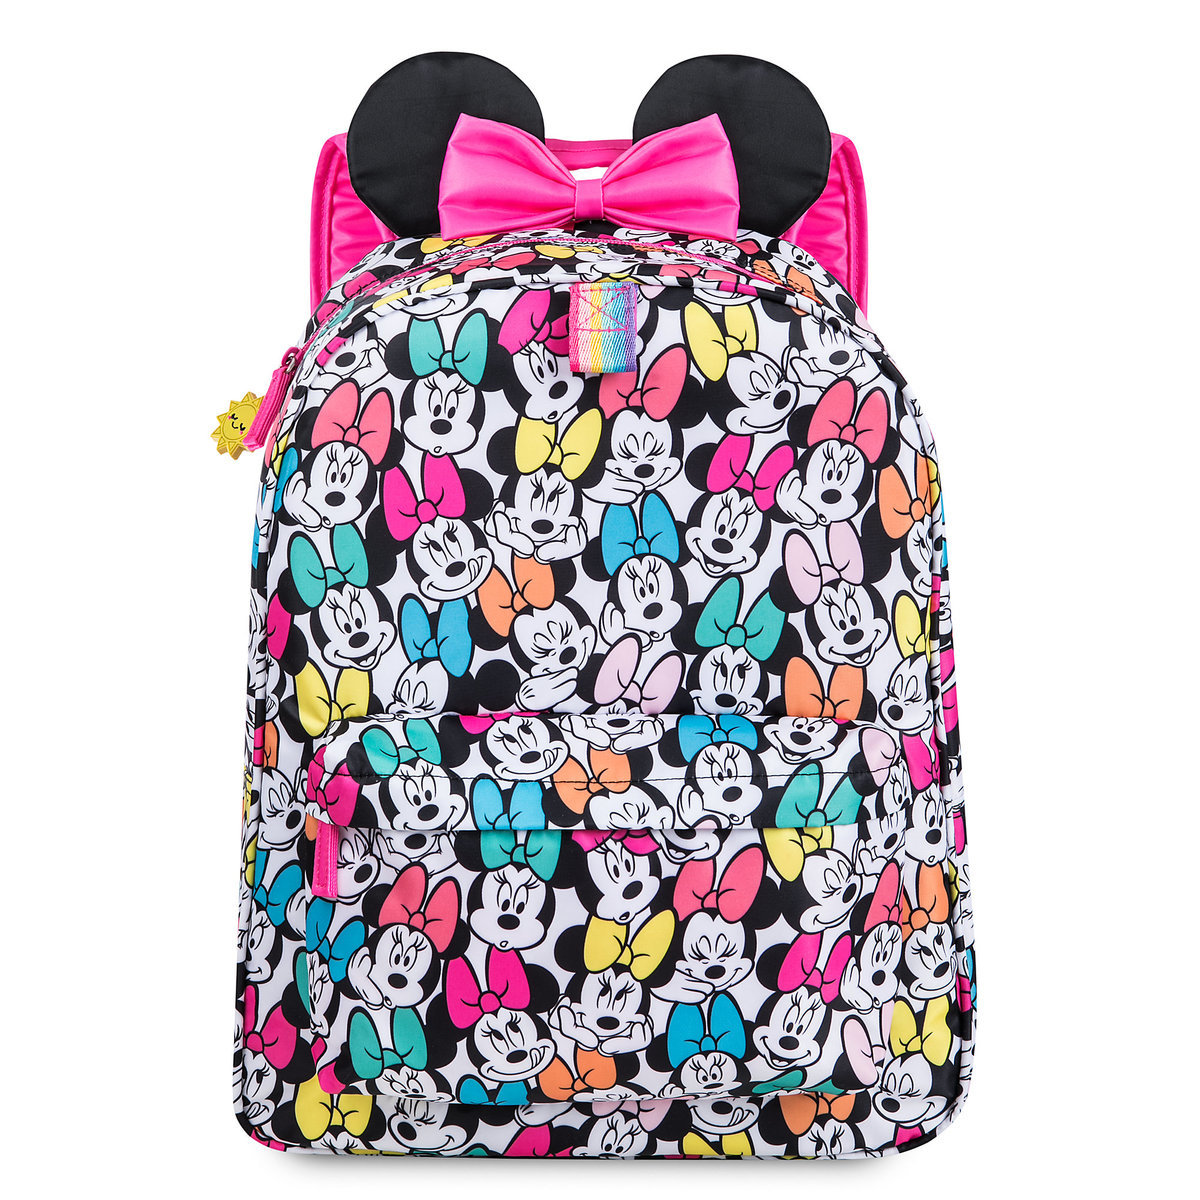 8e17958bda0 Product Image of Minnie Mouse Rainbow Backpack - Personalizable   1